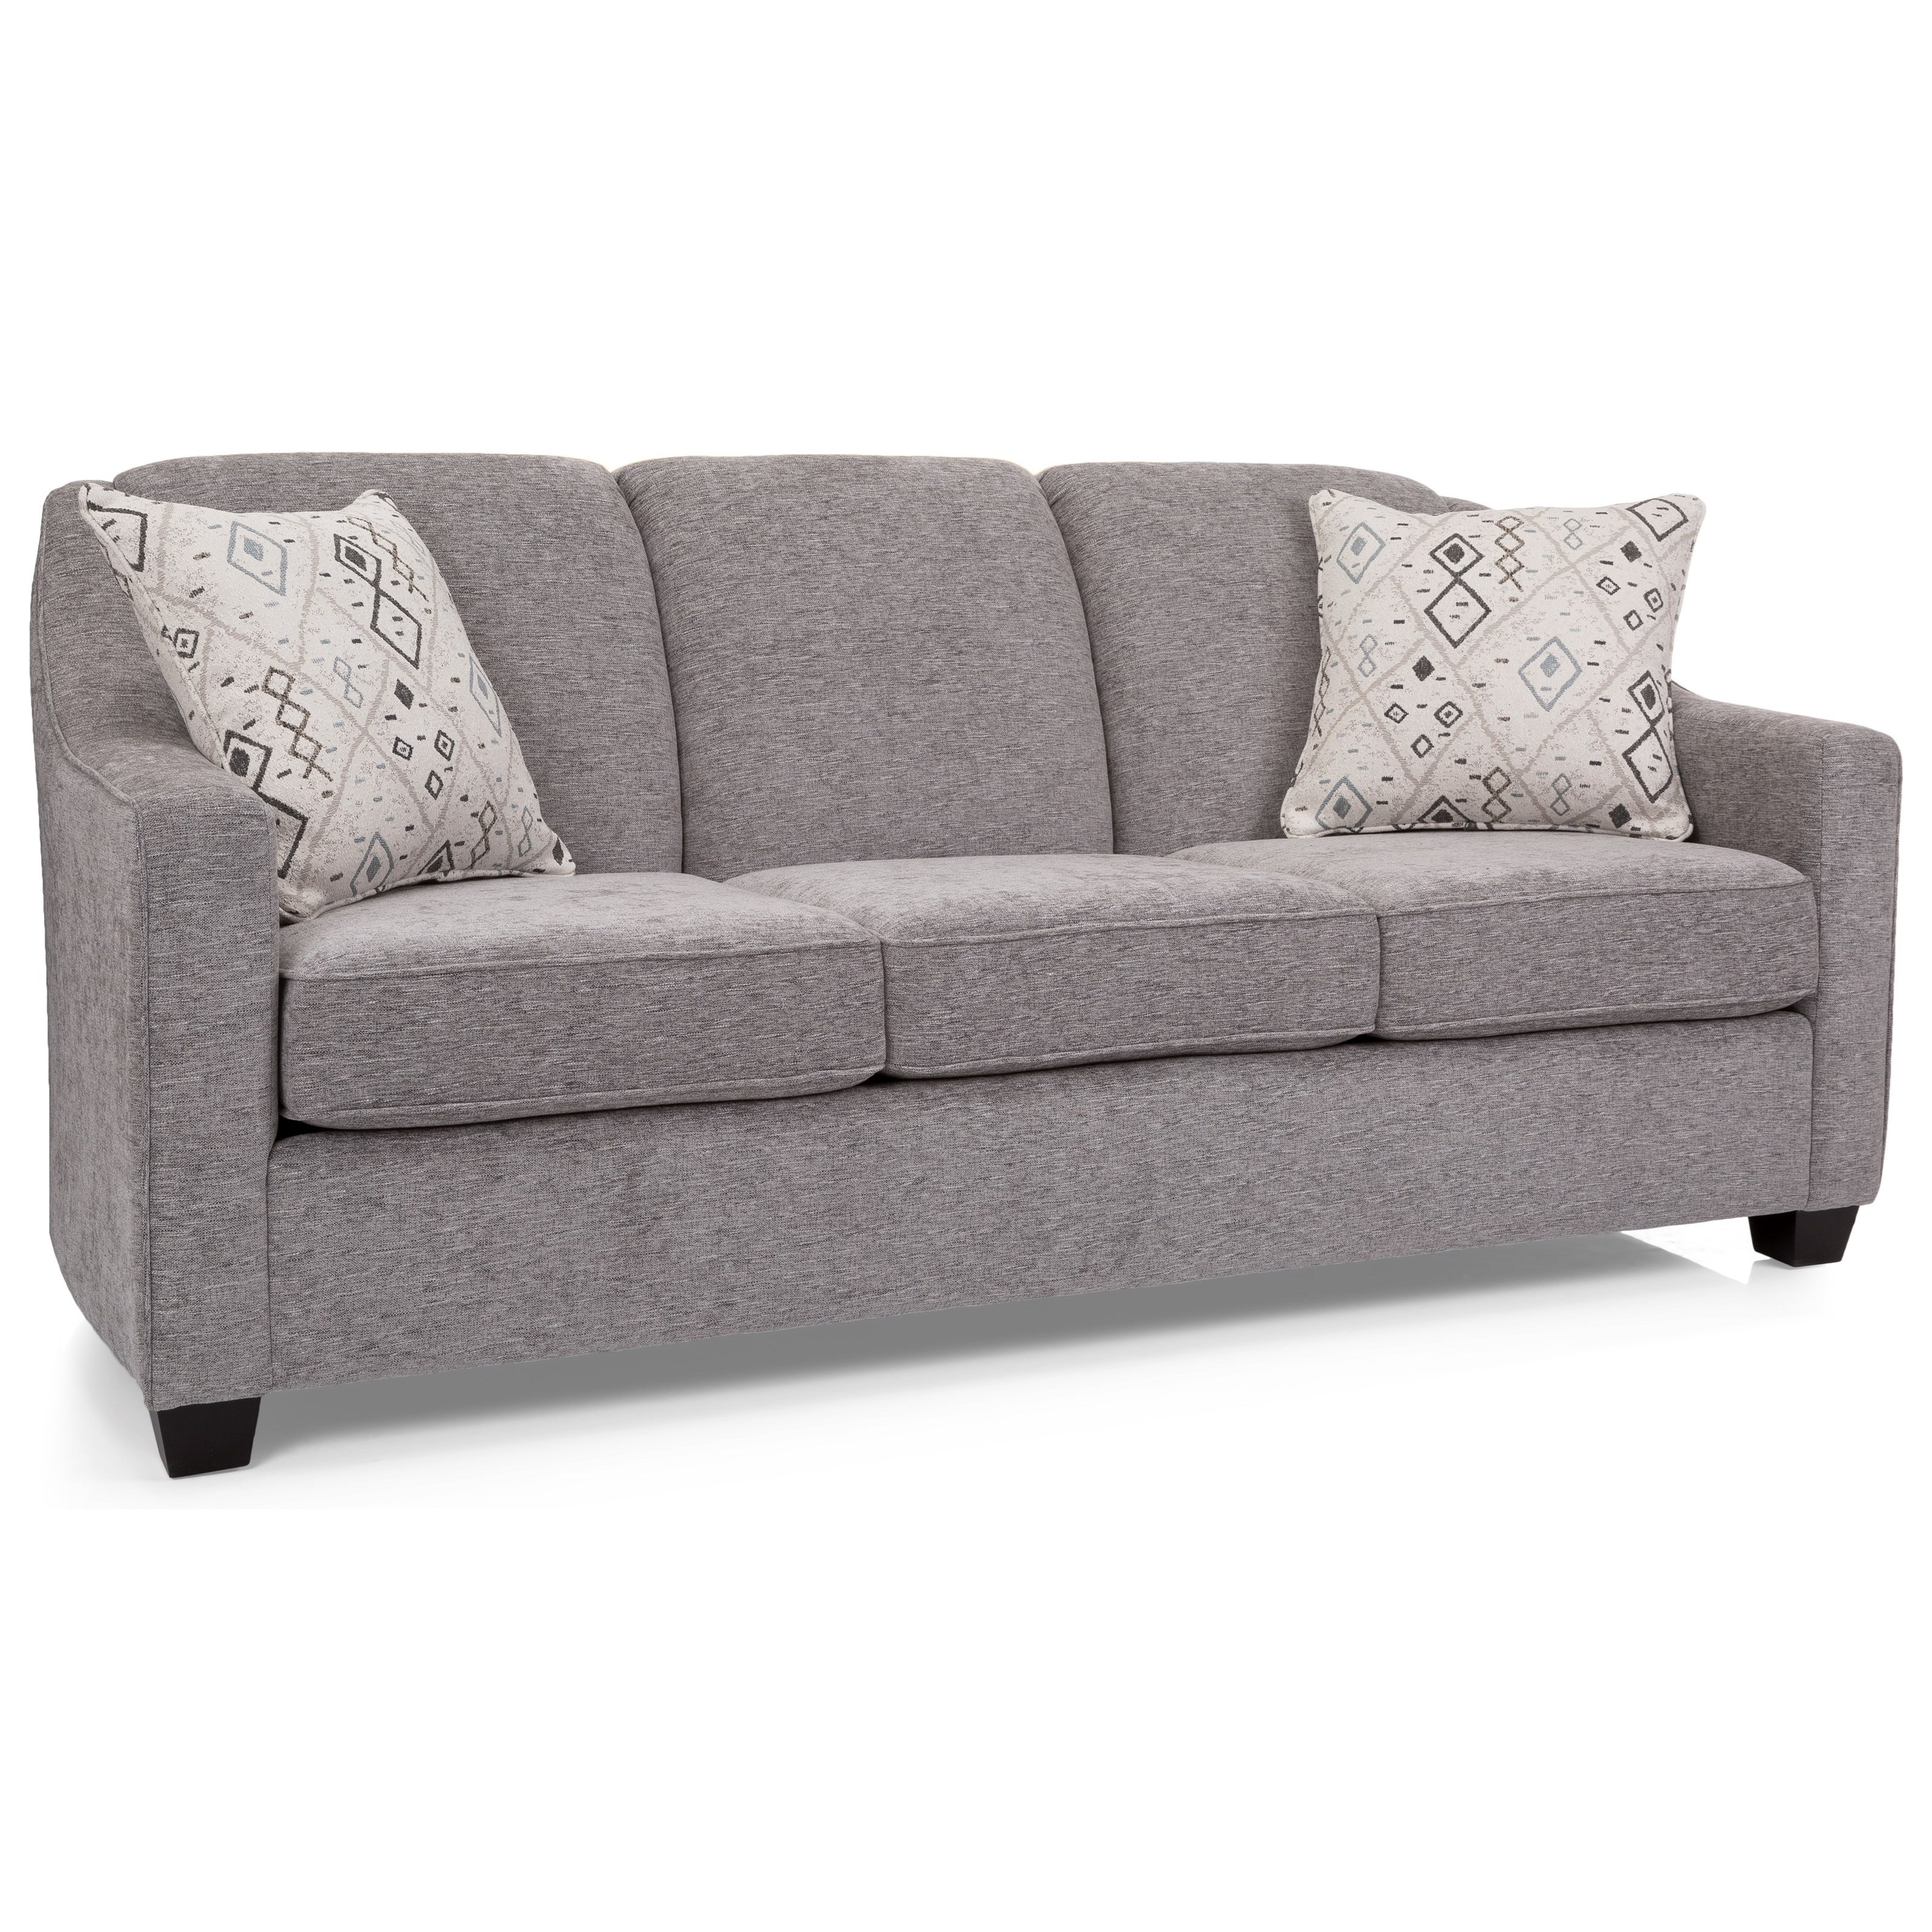 2934 Sofa by Decor-Rest at Johnny Janosik